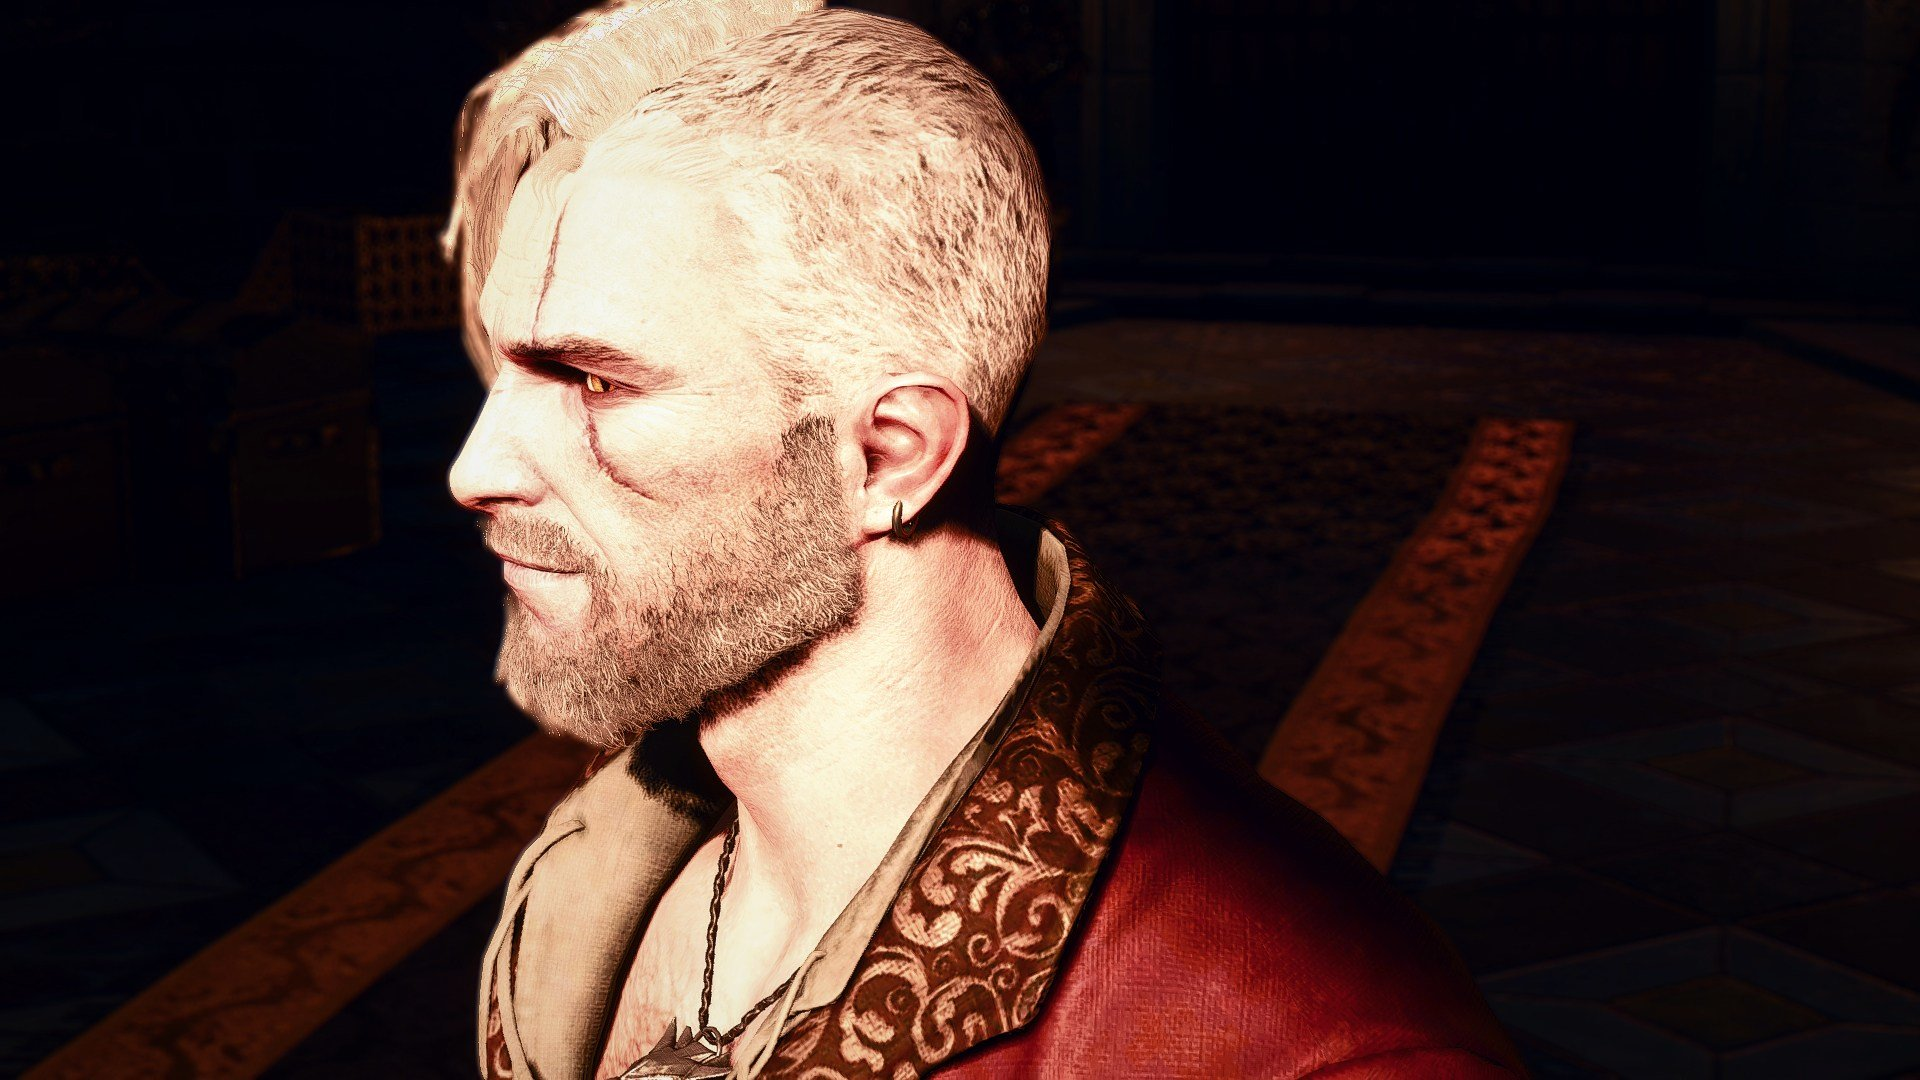 The Best Stylish Hairstyles For Geralt At The Witcher 3 Nexus Pictures